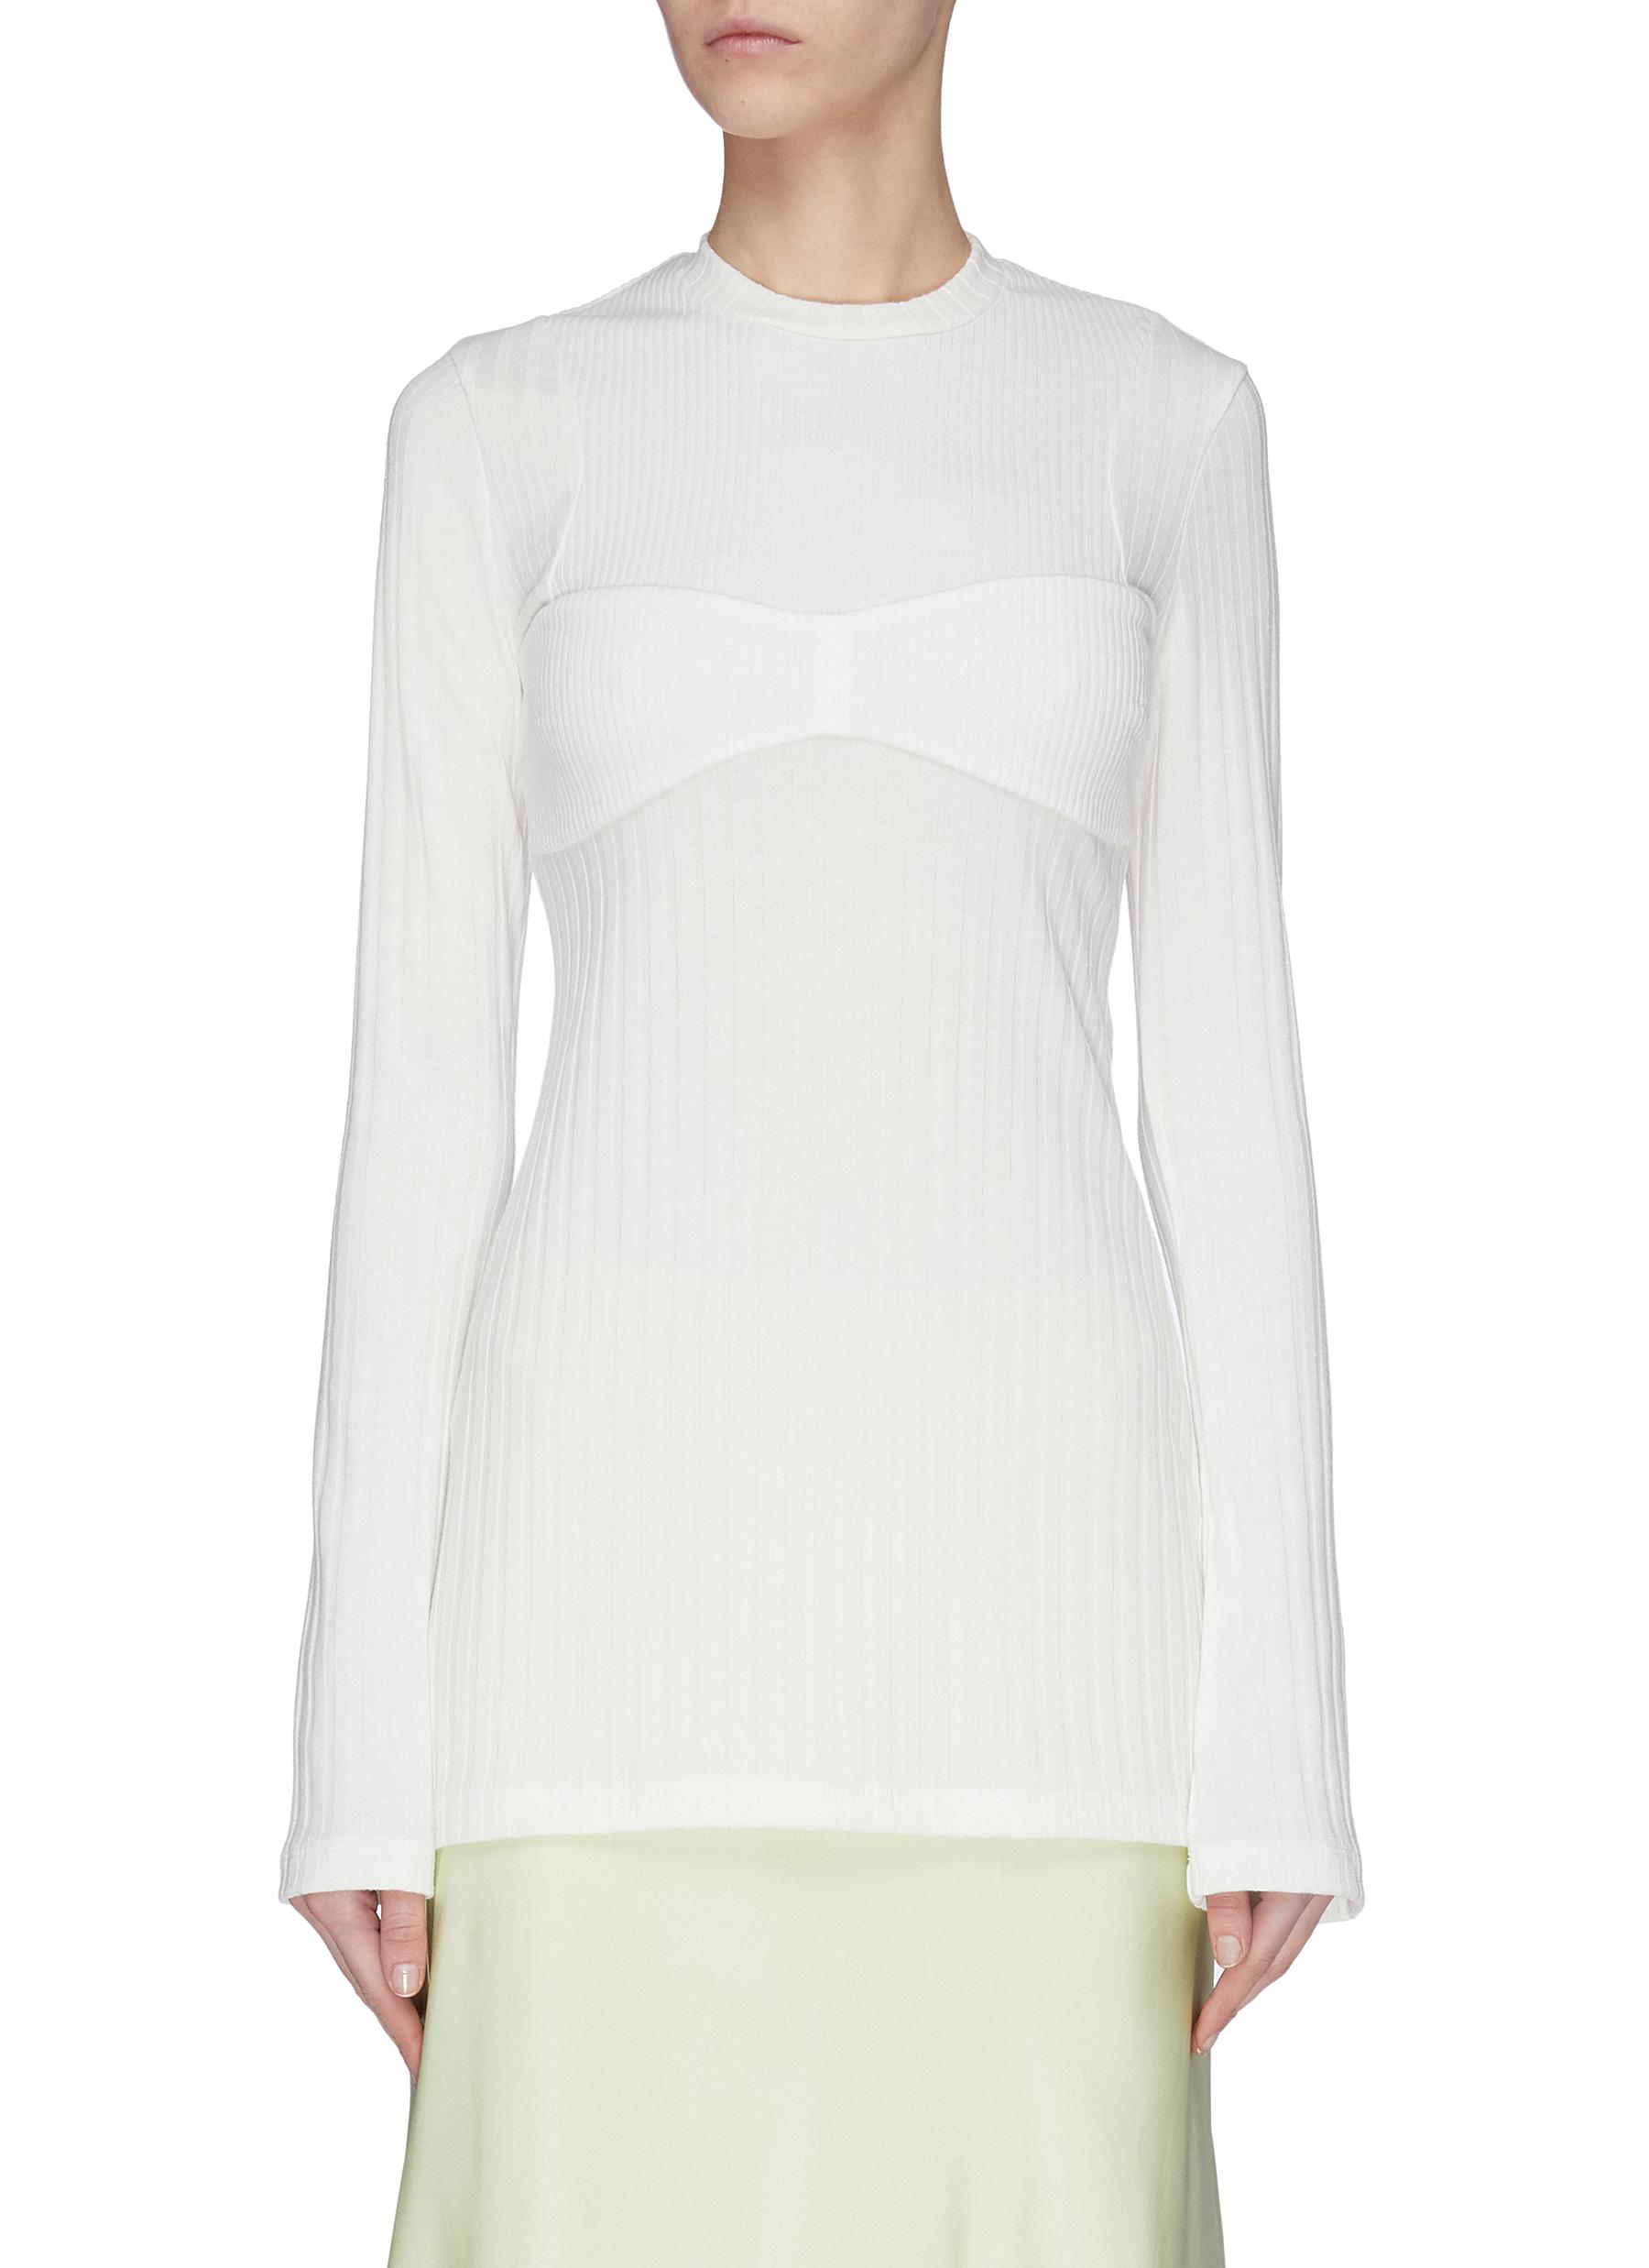 Buy Maggie Marilyn Knitwear 'I'm All In' panelled rib knit top